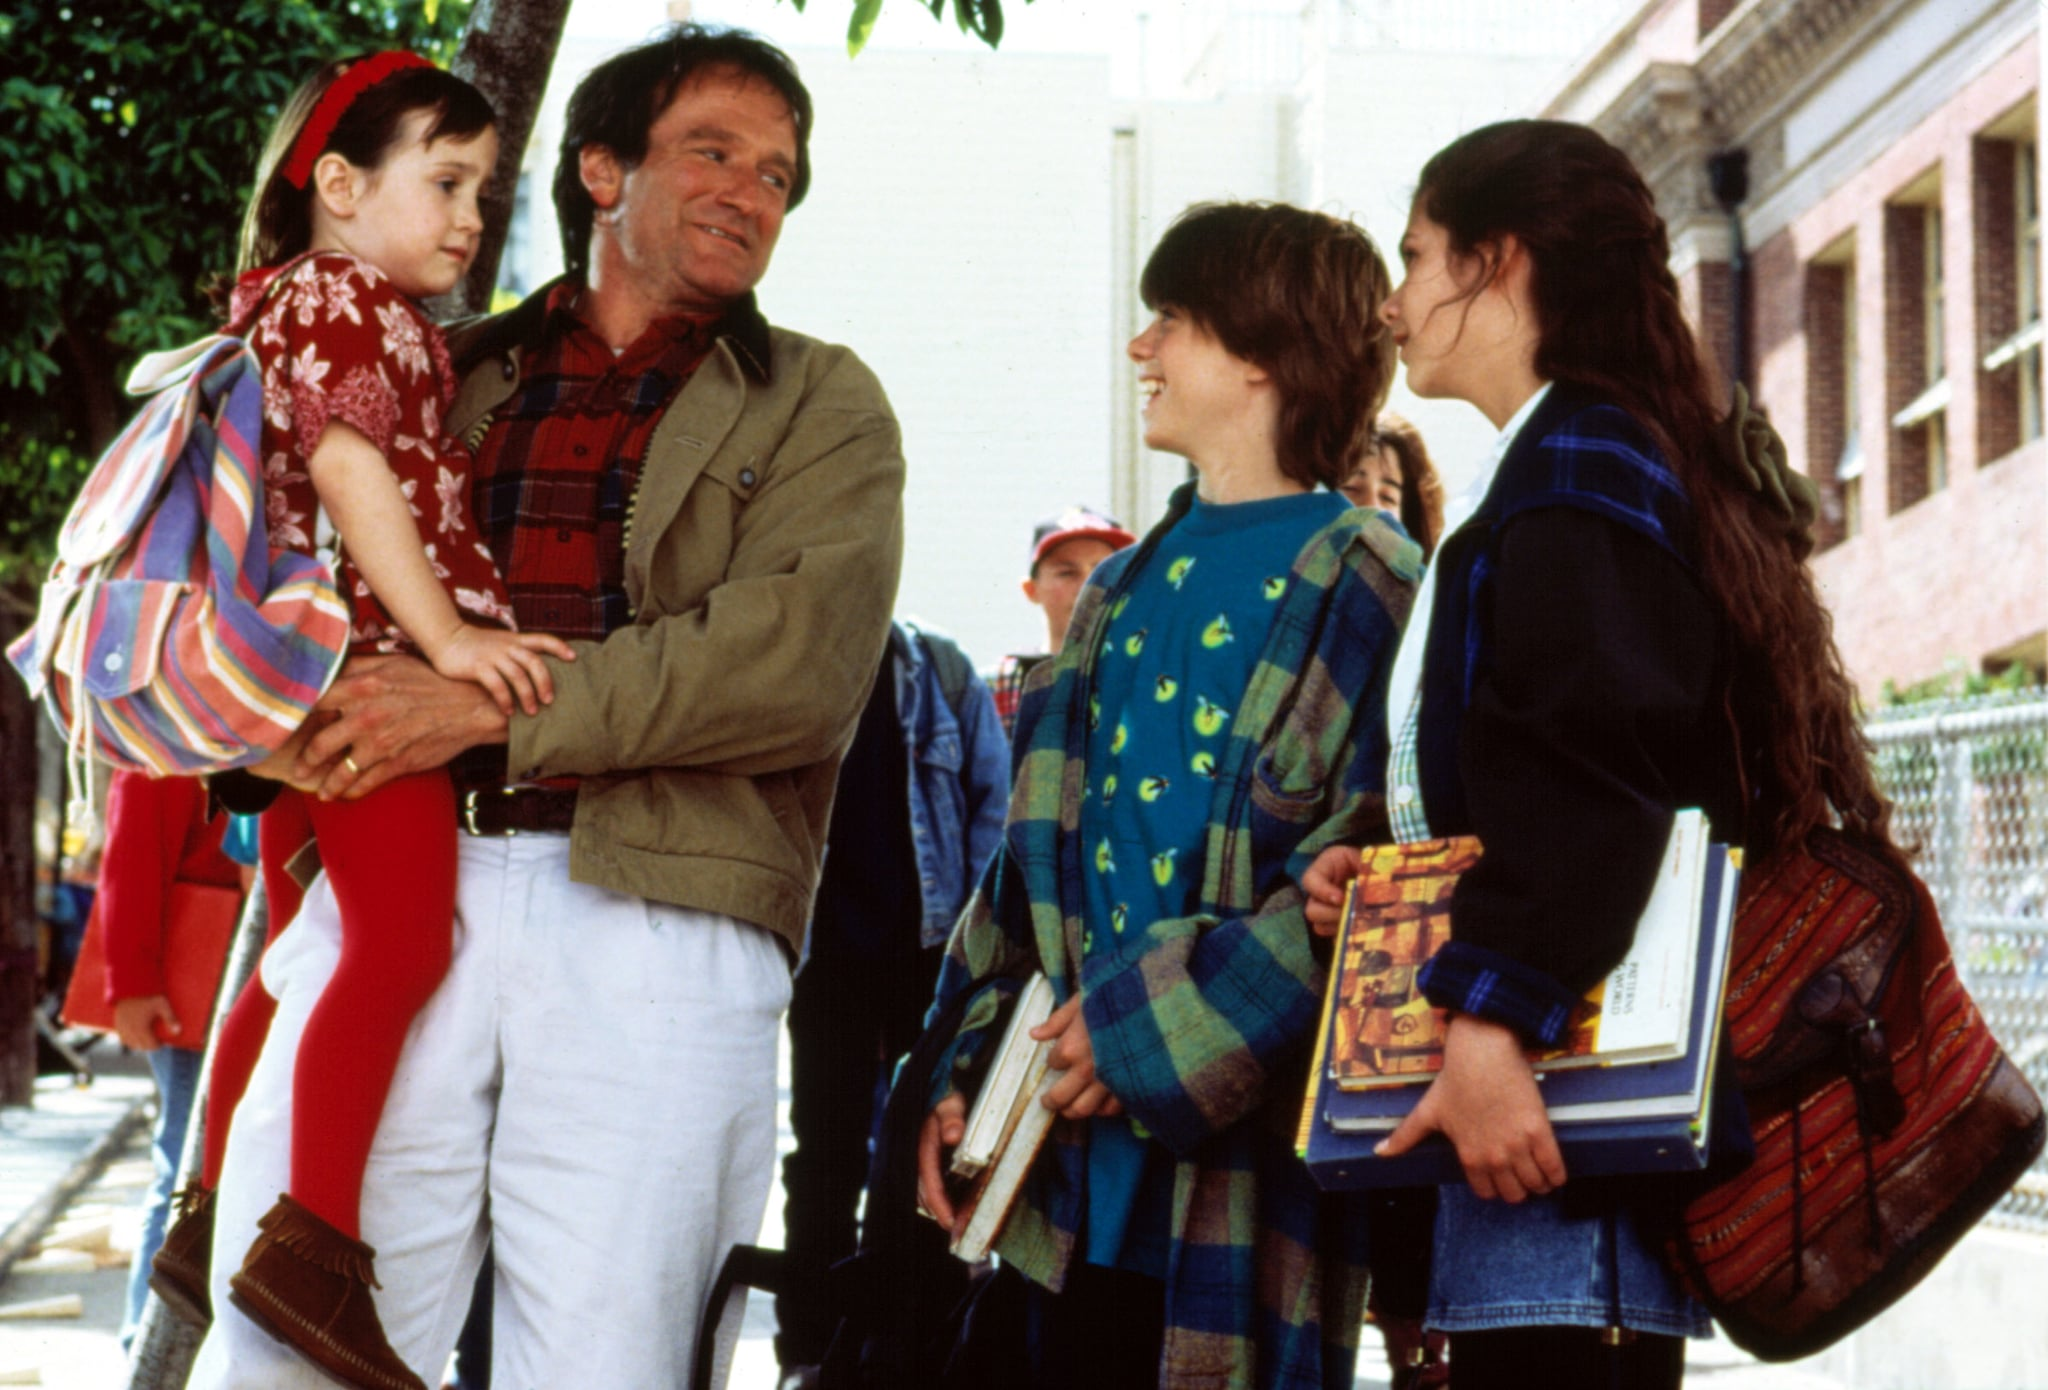 Mrs Doubtfire 2 25 Things You Never Knew About Mrs. Doubtfire